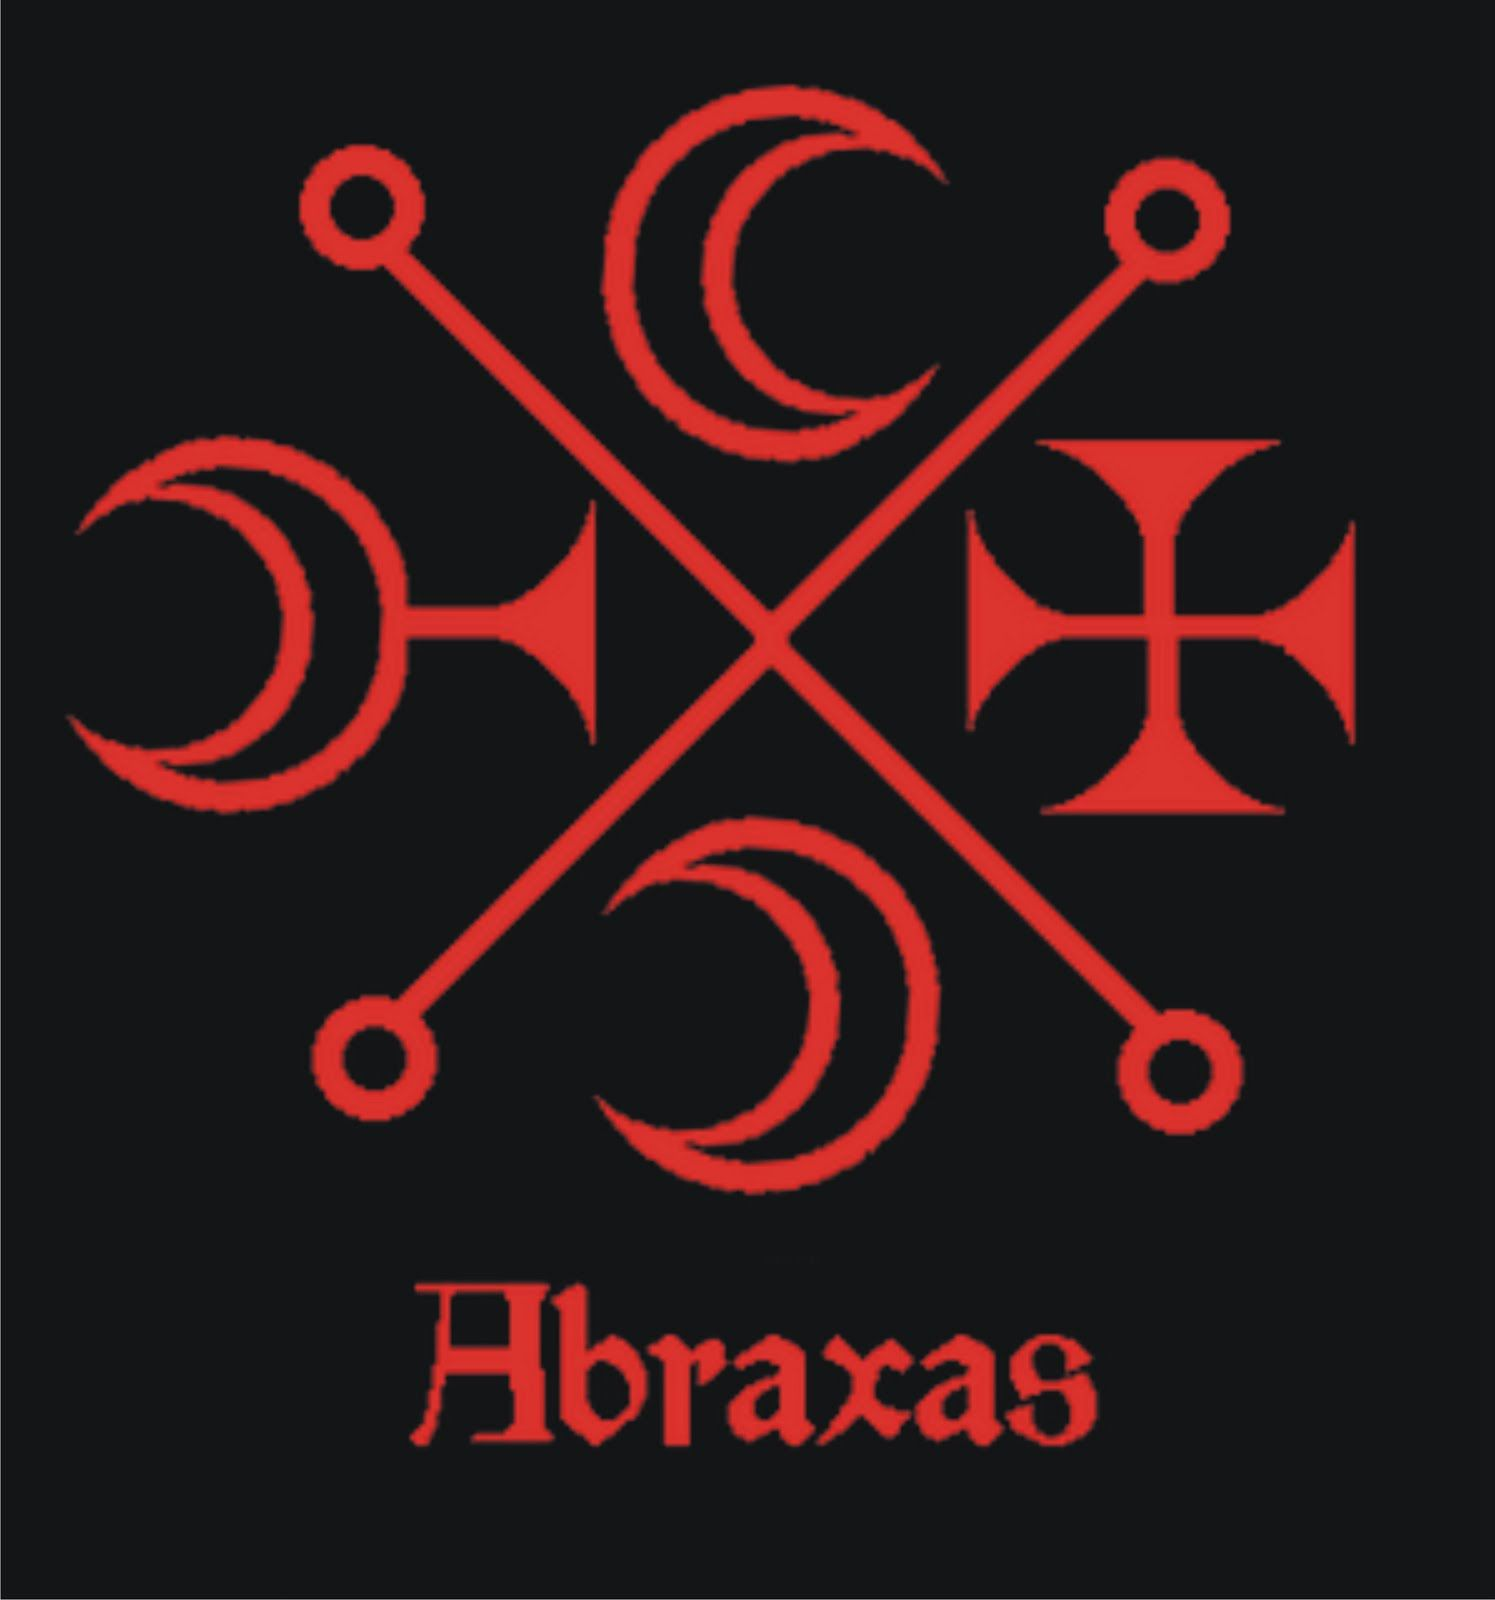 Abraxas pleroma occultism pinterest explore demon symbols witch symbols and more abraxas pleroma demon symbolswitch buycottarizona Gallery